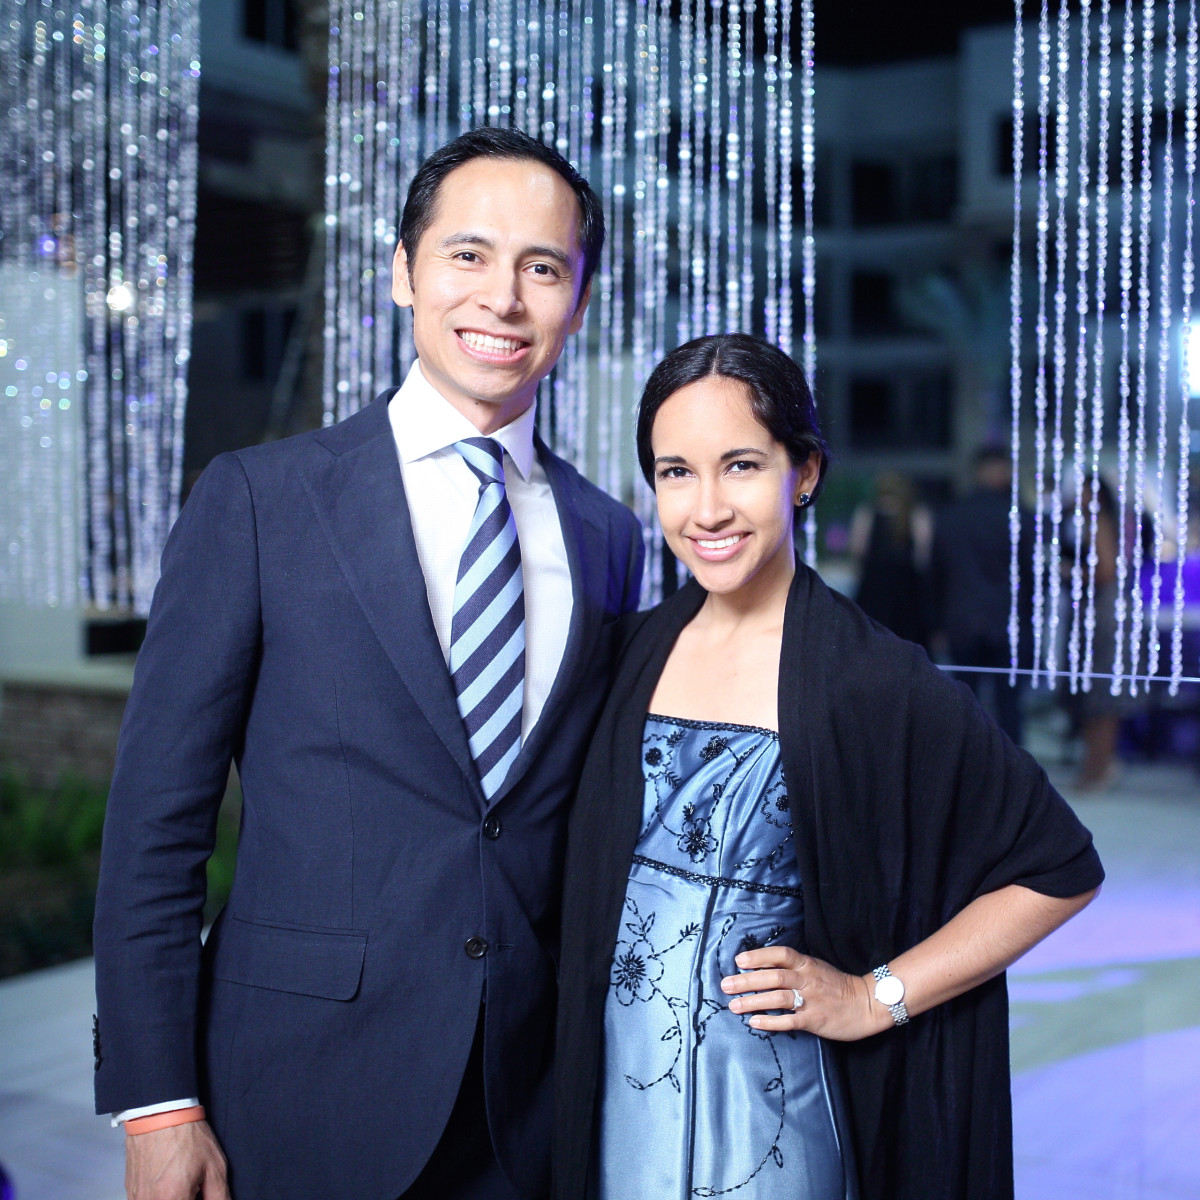 Houston, Big Brothers Big Sisters YP The Big Prom, Feb 2017, Geraldo Juarez, Yvonne Juarez